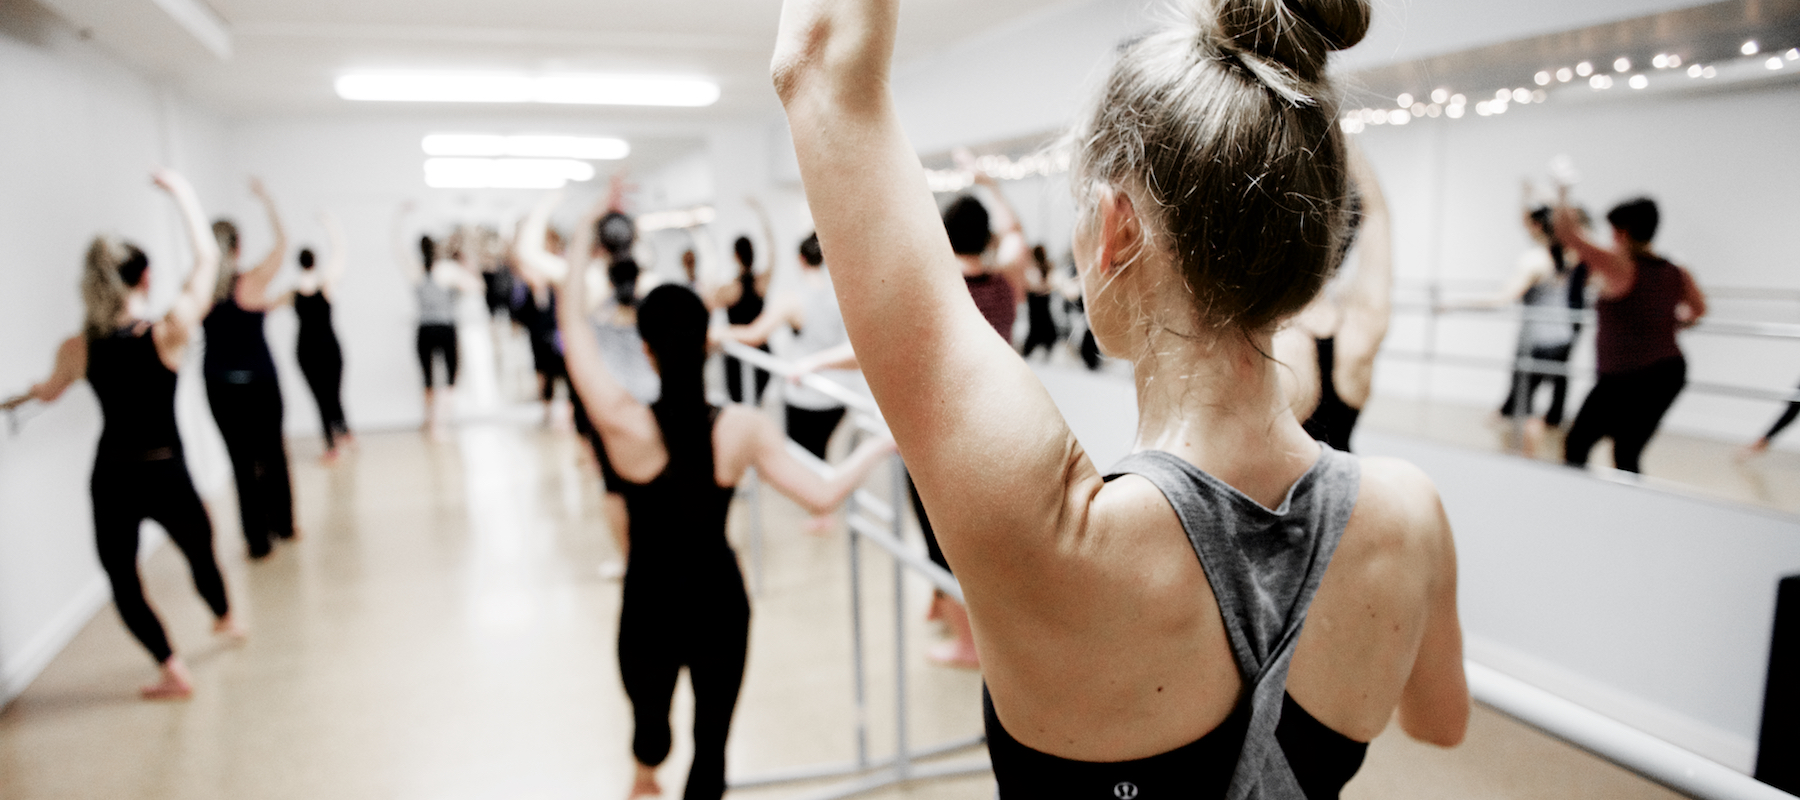 Try Ballet Barre Works   First month unlimited for $60   Join us